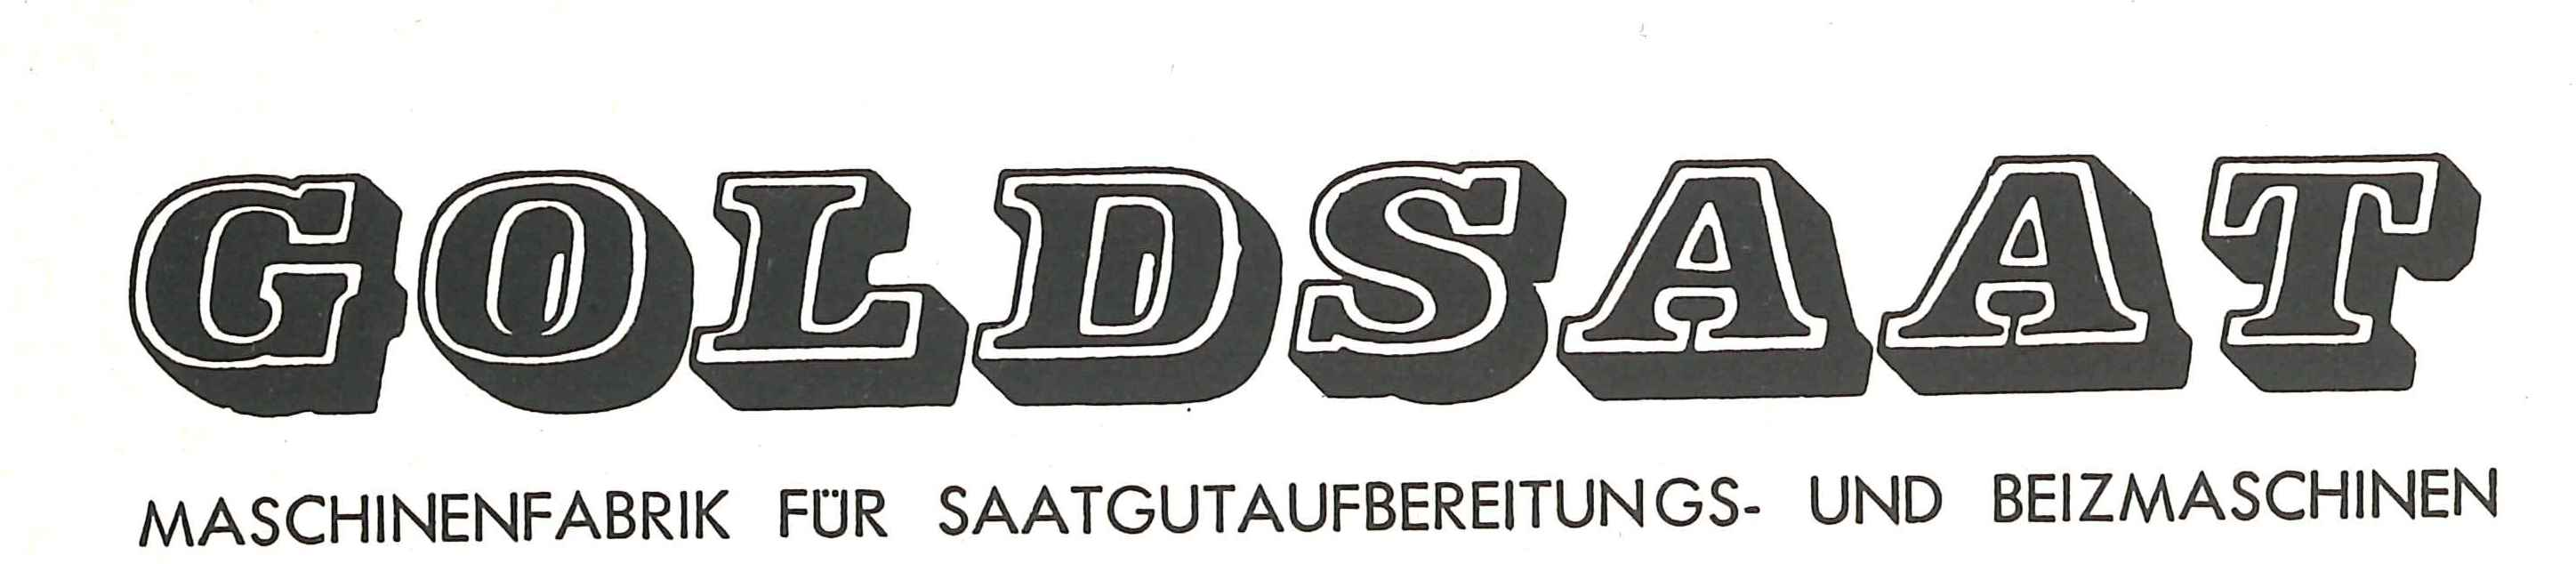 Goldsaat GmbH, Fritz Döring & CO.